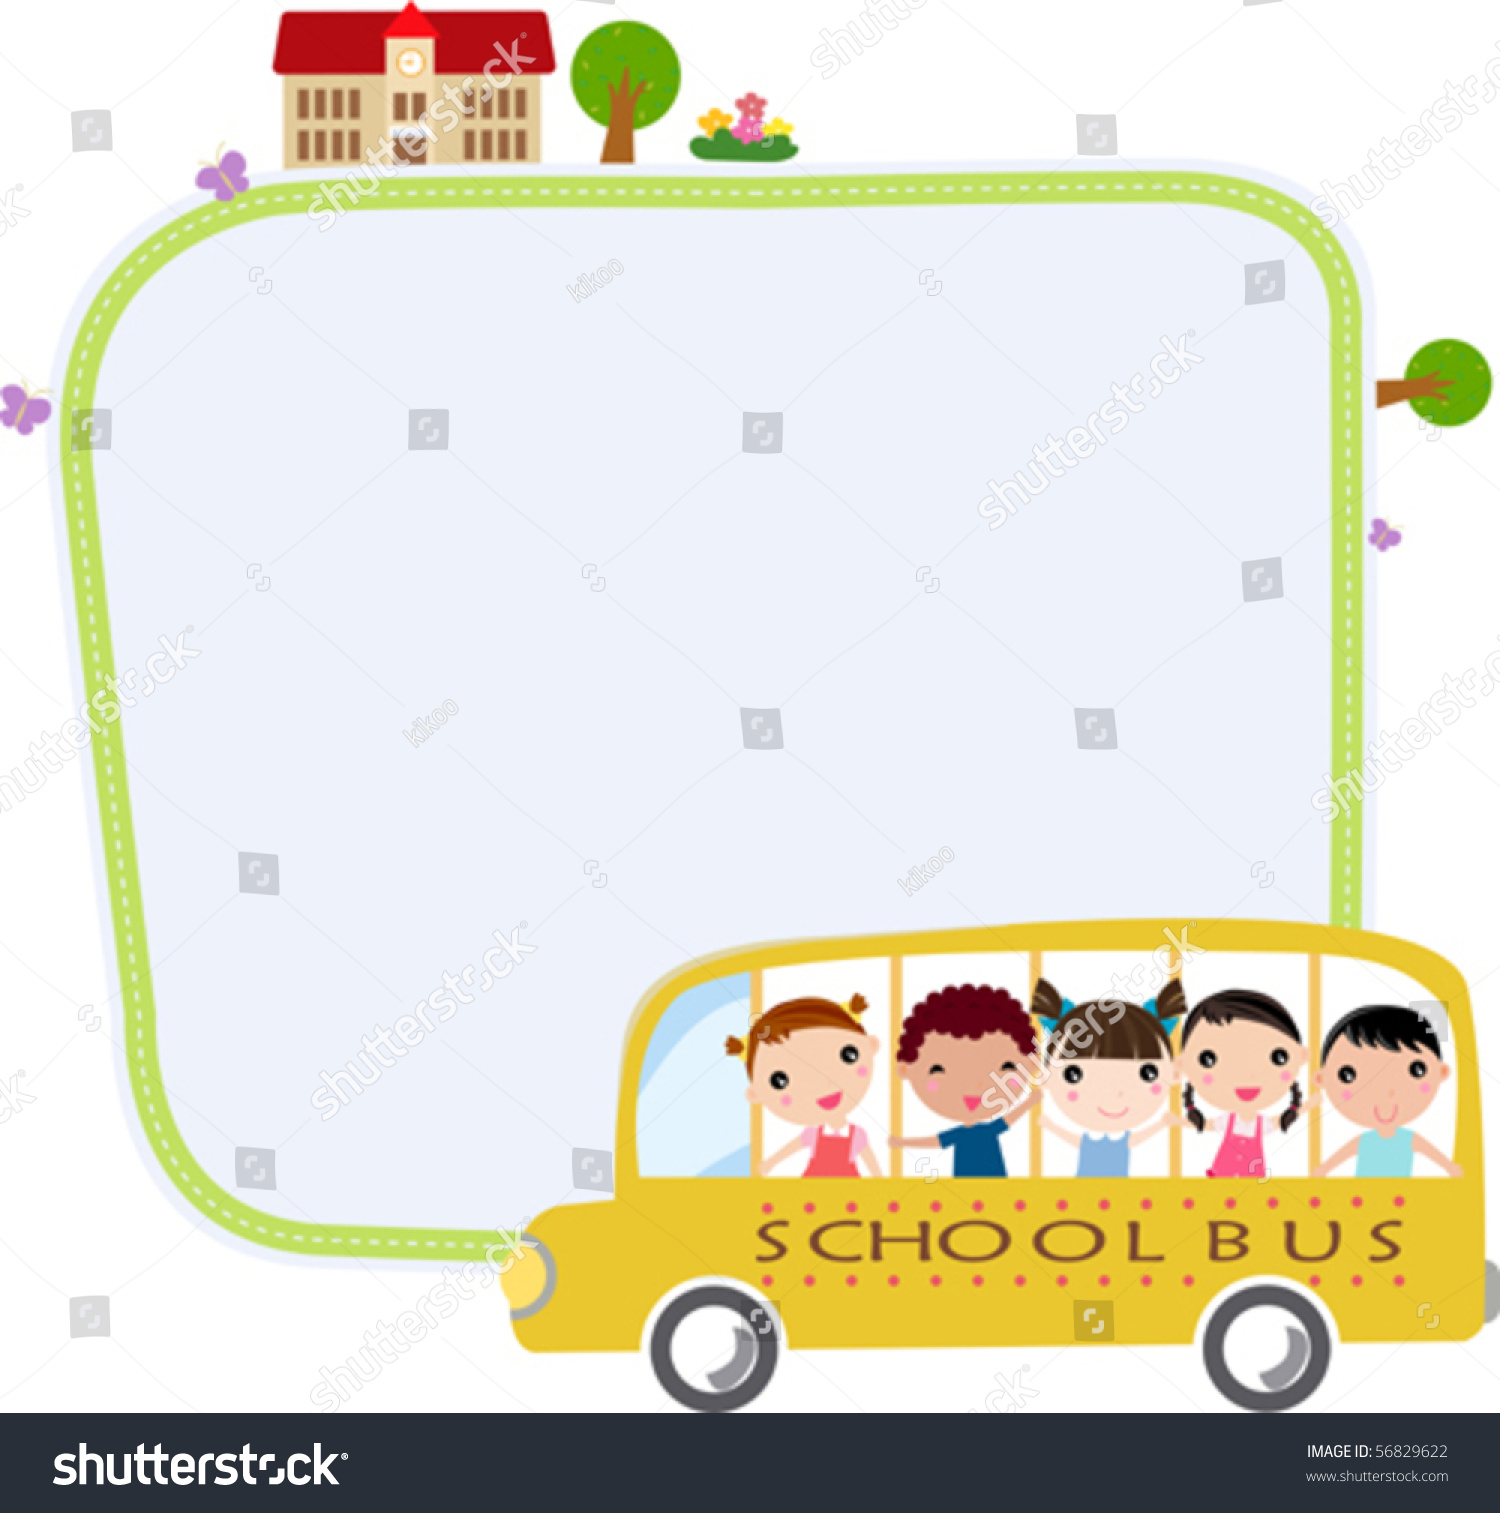 school bus heading school happy children stock vector school bus clipart school bus clipart png